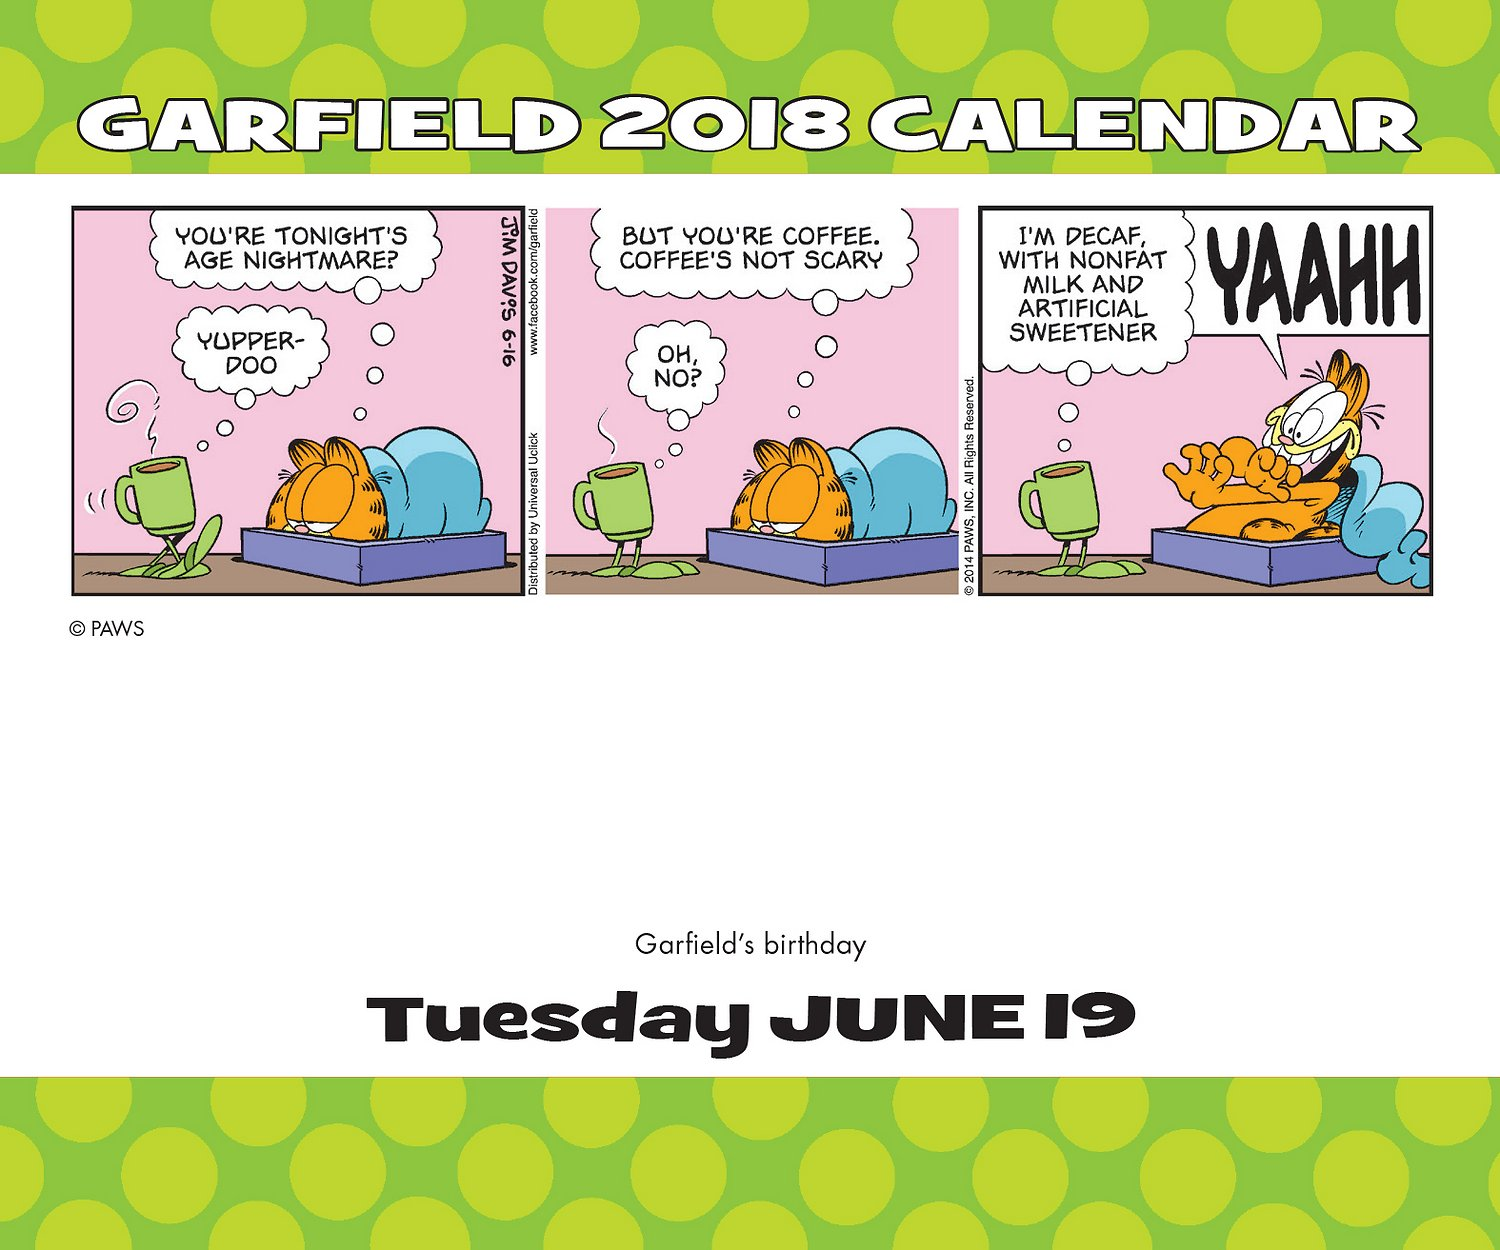 Free Comic Book Day 2018 Krypton: Garfield 2018 Day-to-Day Calendar